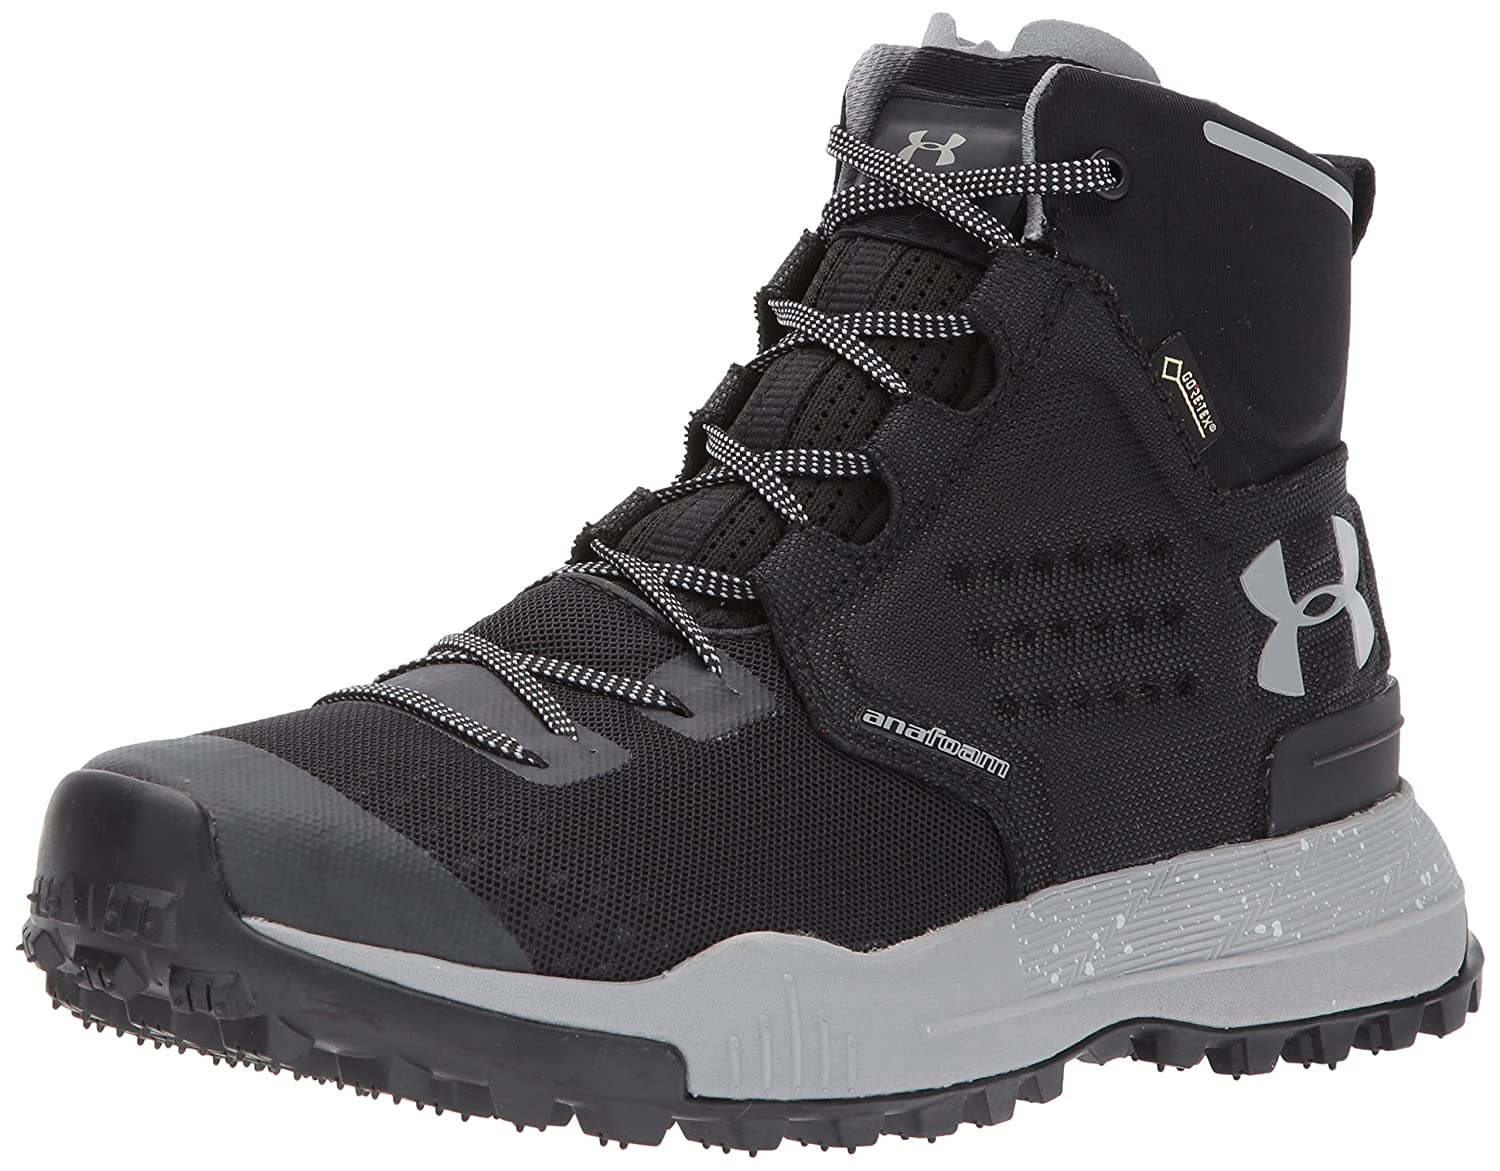 Under Armour Women's Newell Ridge Mid Gore-Tex Backpacking Boot B01N7KF8IQ 11 M US|Black (001)/Steel